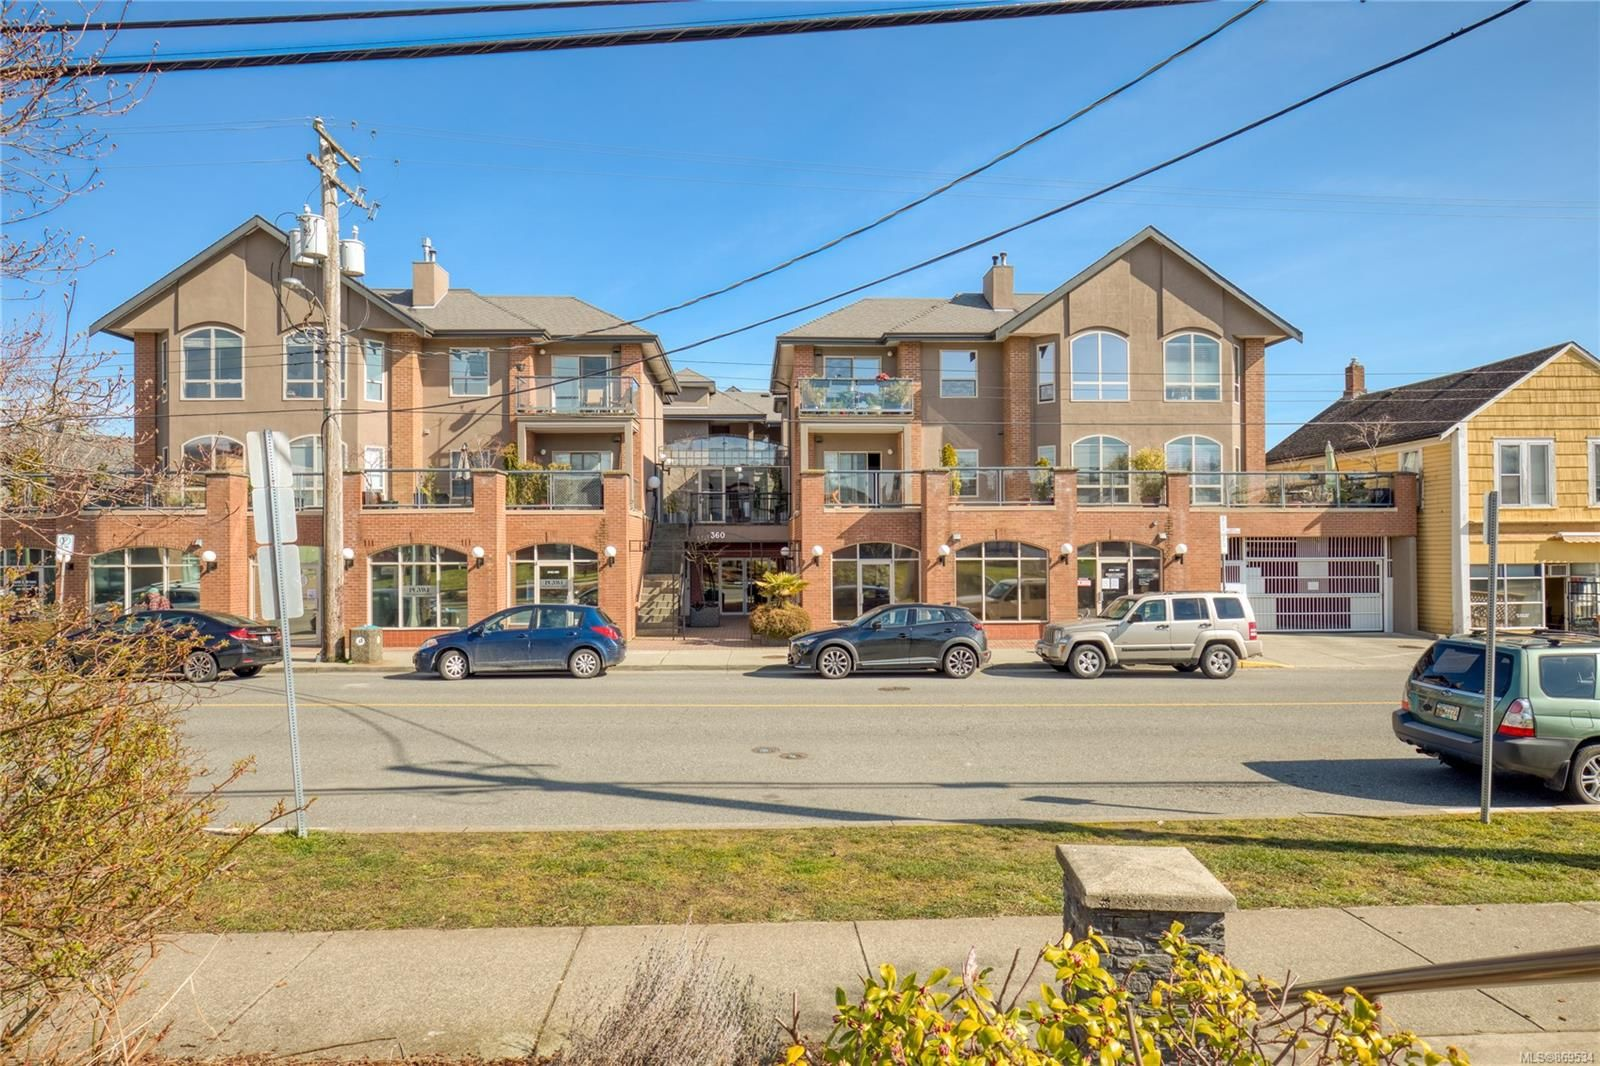 Main Photo: 206 360 Selby St in : Na Old City Condo for sale (Nanaimo)  : MLS®# 869534